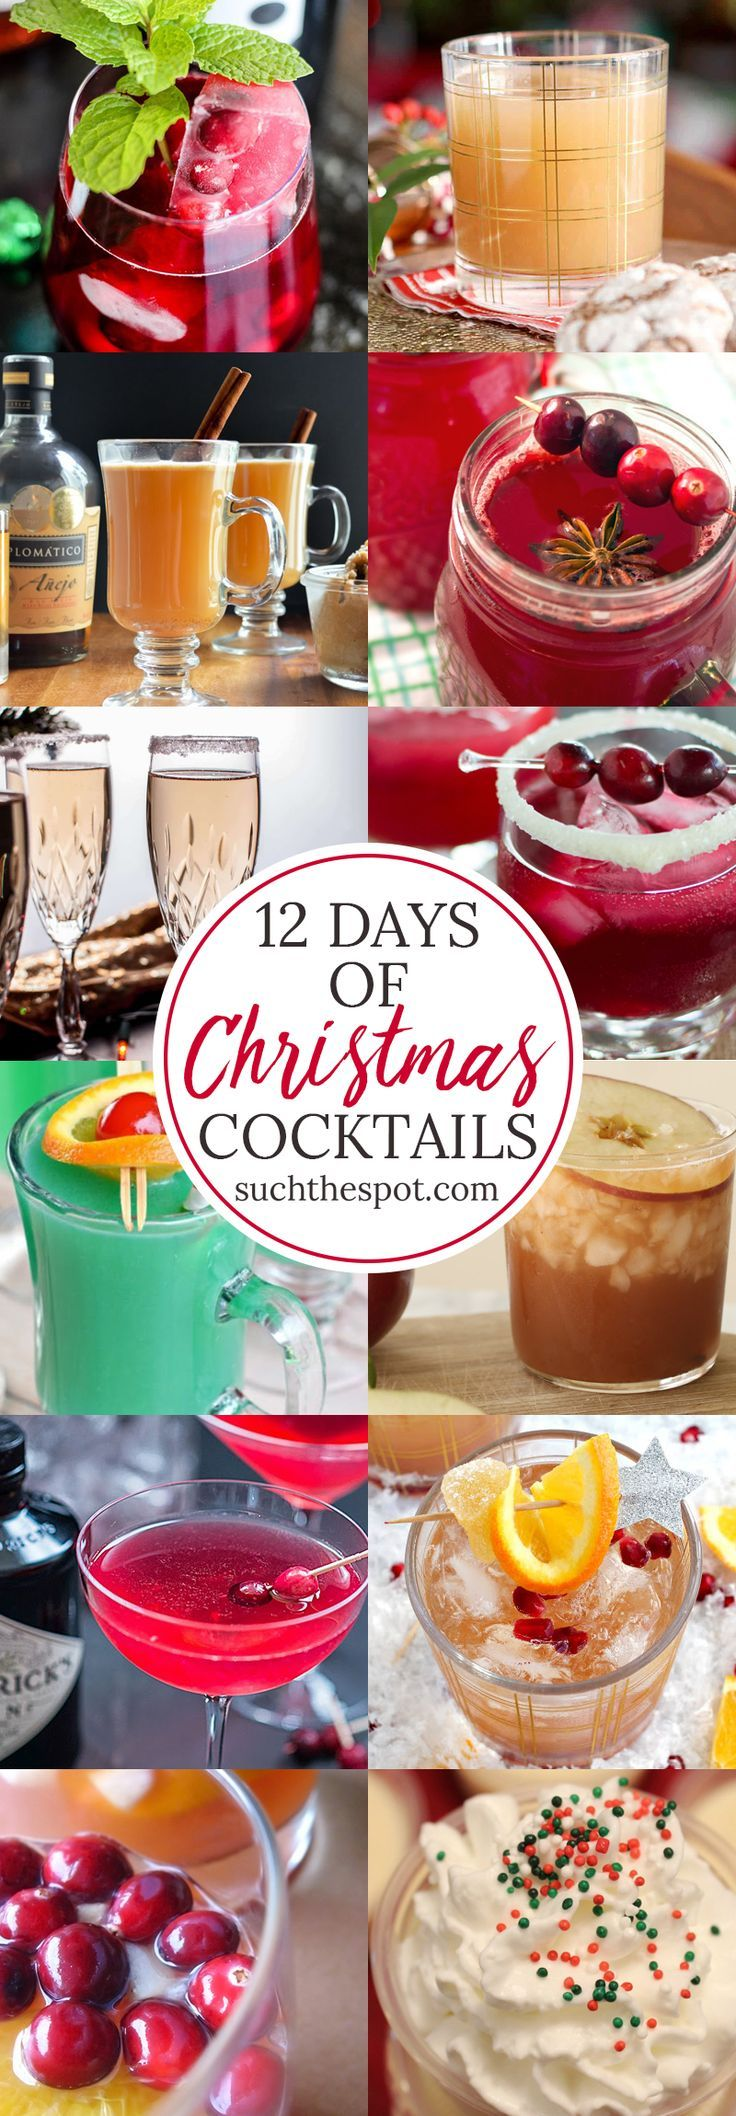 The best Christmas cocktail recipes take a grown-up spin on favorite holiday flavors. Check this list (twice) for something to serve for a crowd at your Christmas party! #Christmas #cocktails